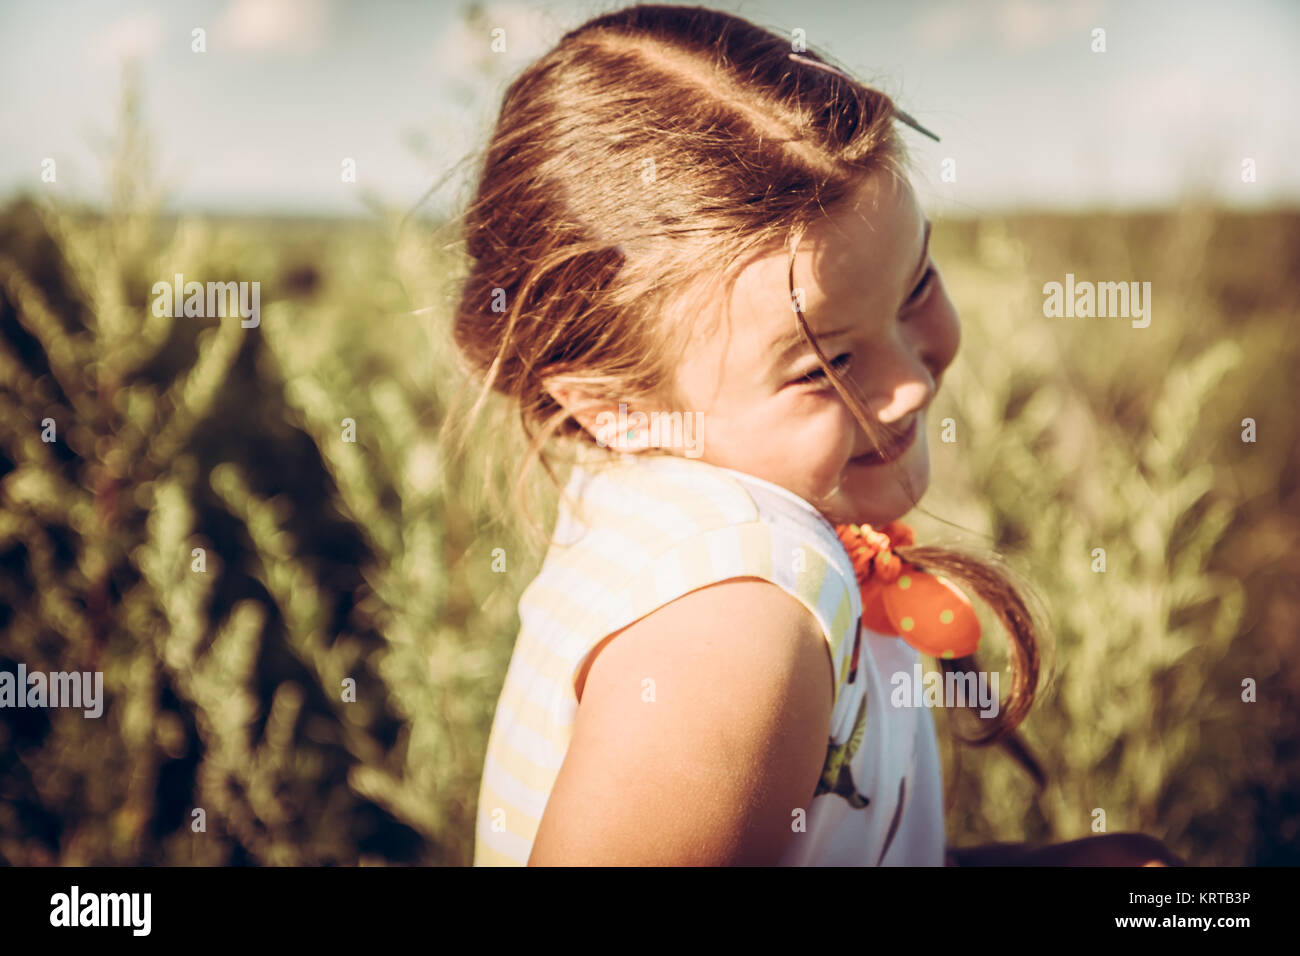 Cute shy plumpy girl in summer rural field in countryside during summer holidays symbolizing happy carefree childhood - Stock Image